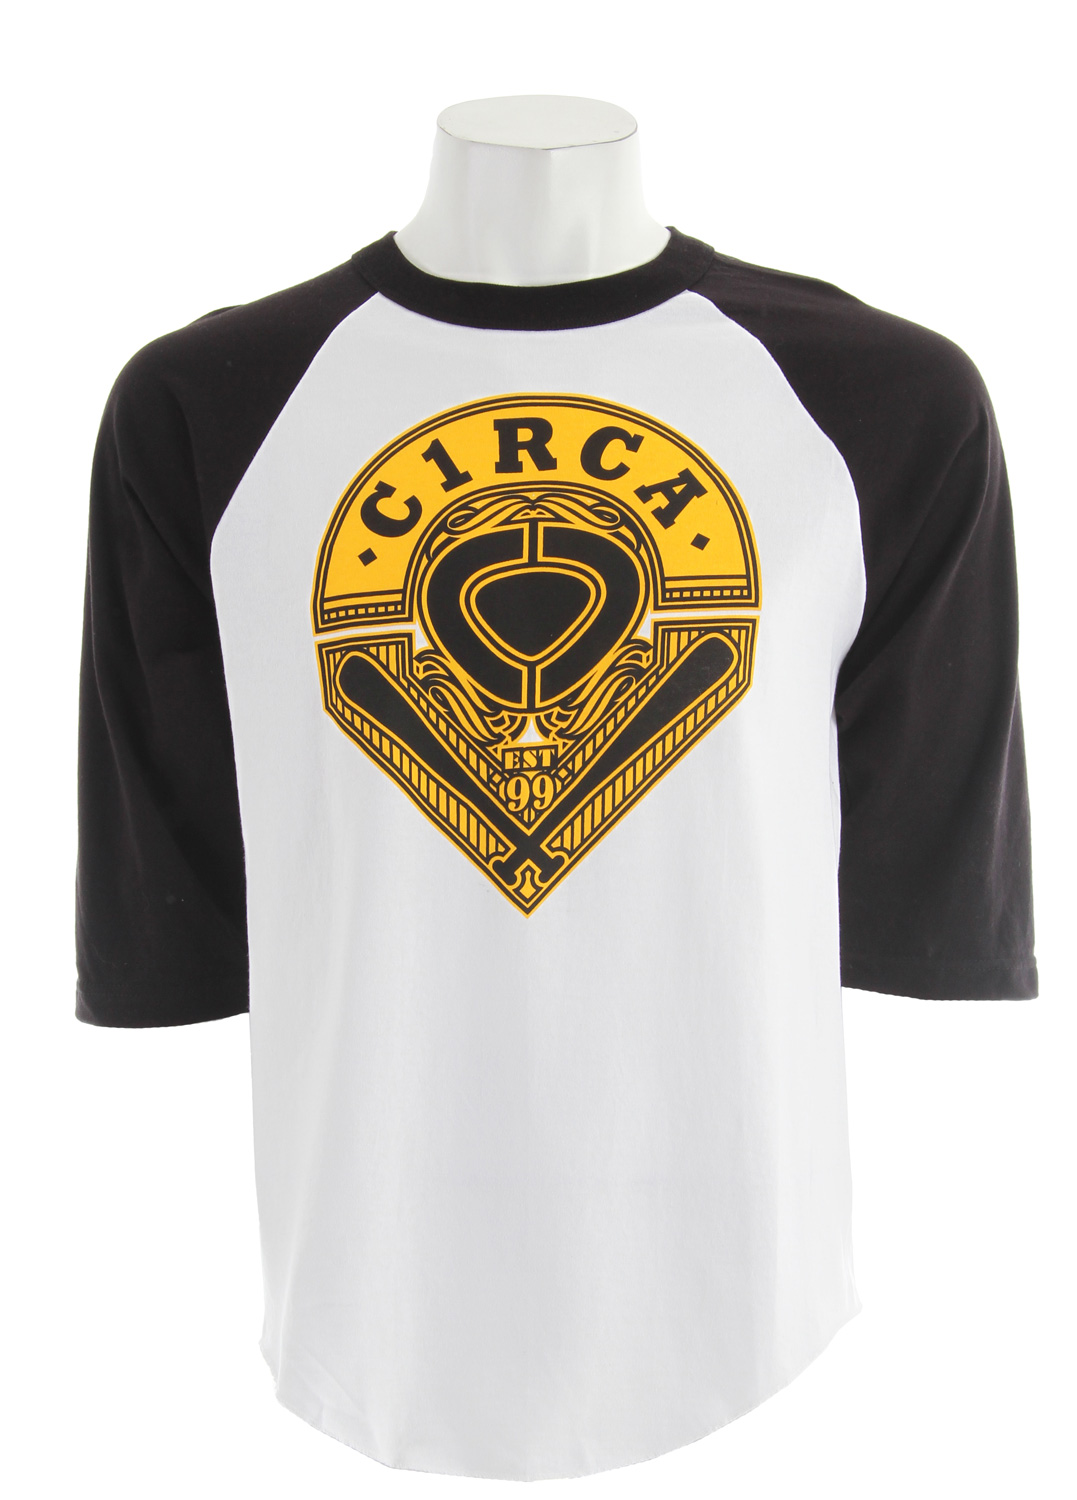 Key Features of The Circa Stadium T-Shirt: Regular Fit Crew Neck Short Sleeve 100% cotton Standard fit 3/4 raglan sleeve - $15.95